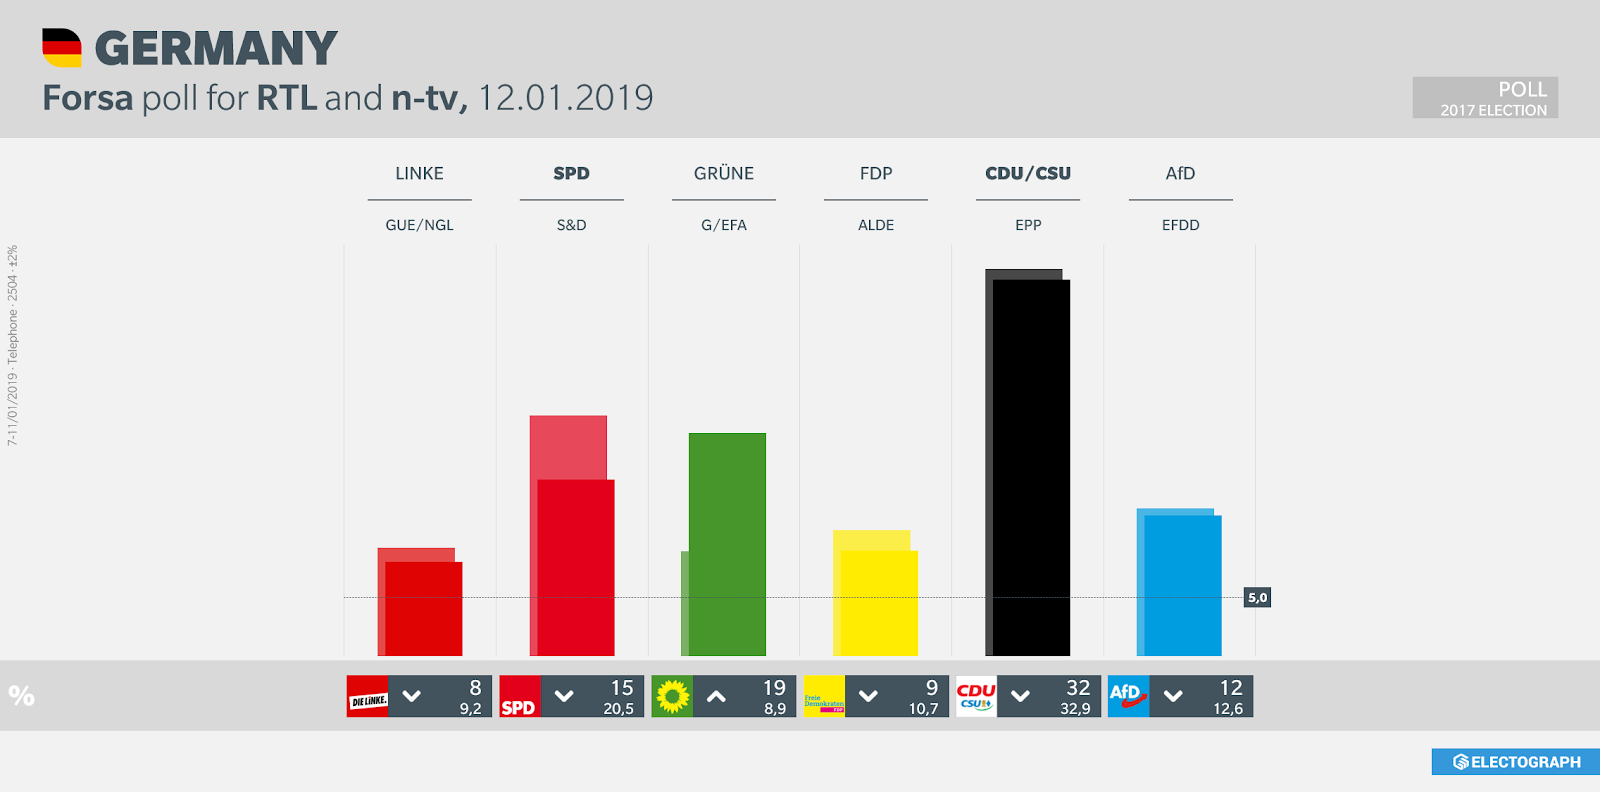 GERMANY: Forsa poll chart for RTL and n-tv, 12 January 2019